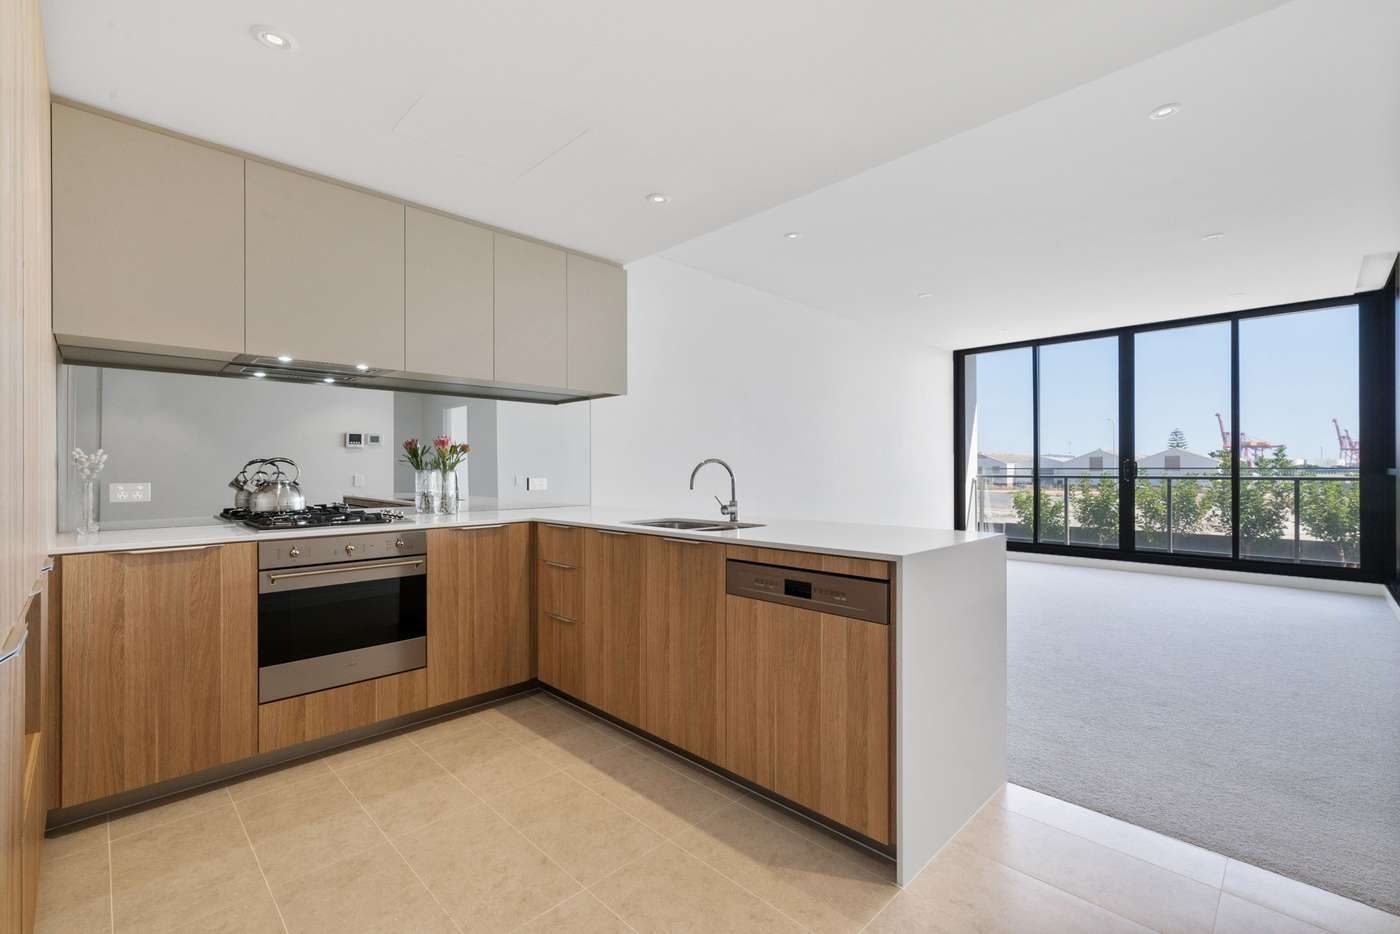 Seventh view of Homely apartment listing, 214/17 Freeman Loop, North Fremantle WA 6159